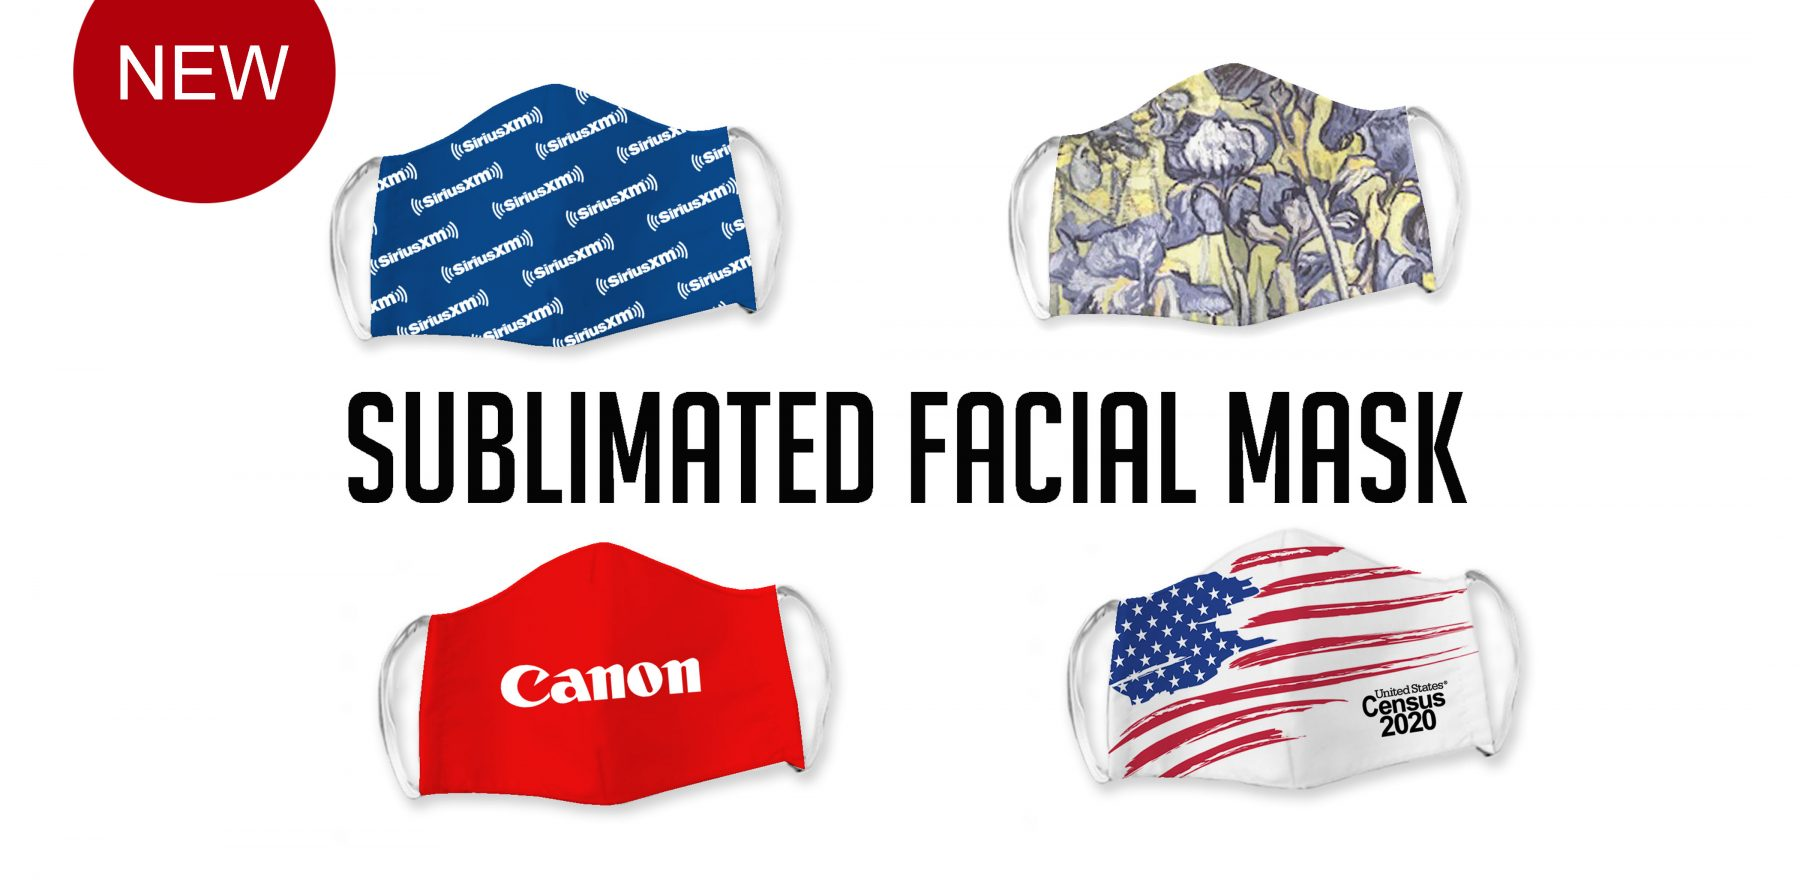 sublimated facial mask